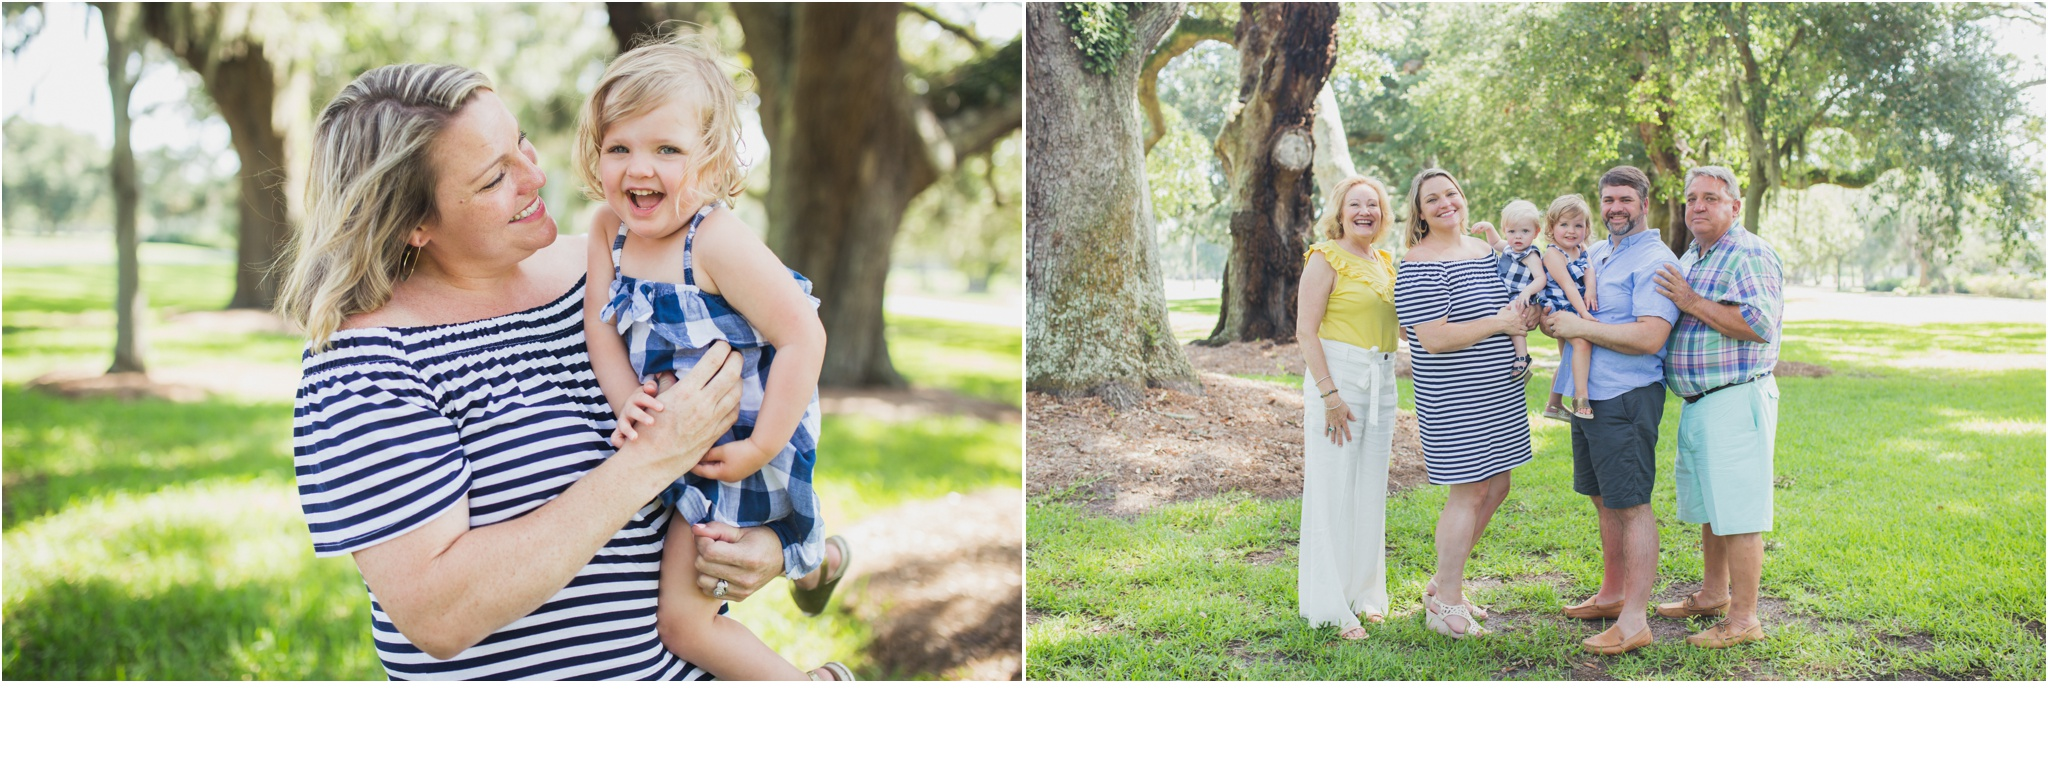 Rainey_Gregg_Photography_St._Simons_Island_Georgia_California_Wedding_Portrait_Photography_1428.jpg